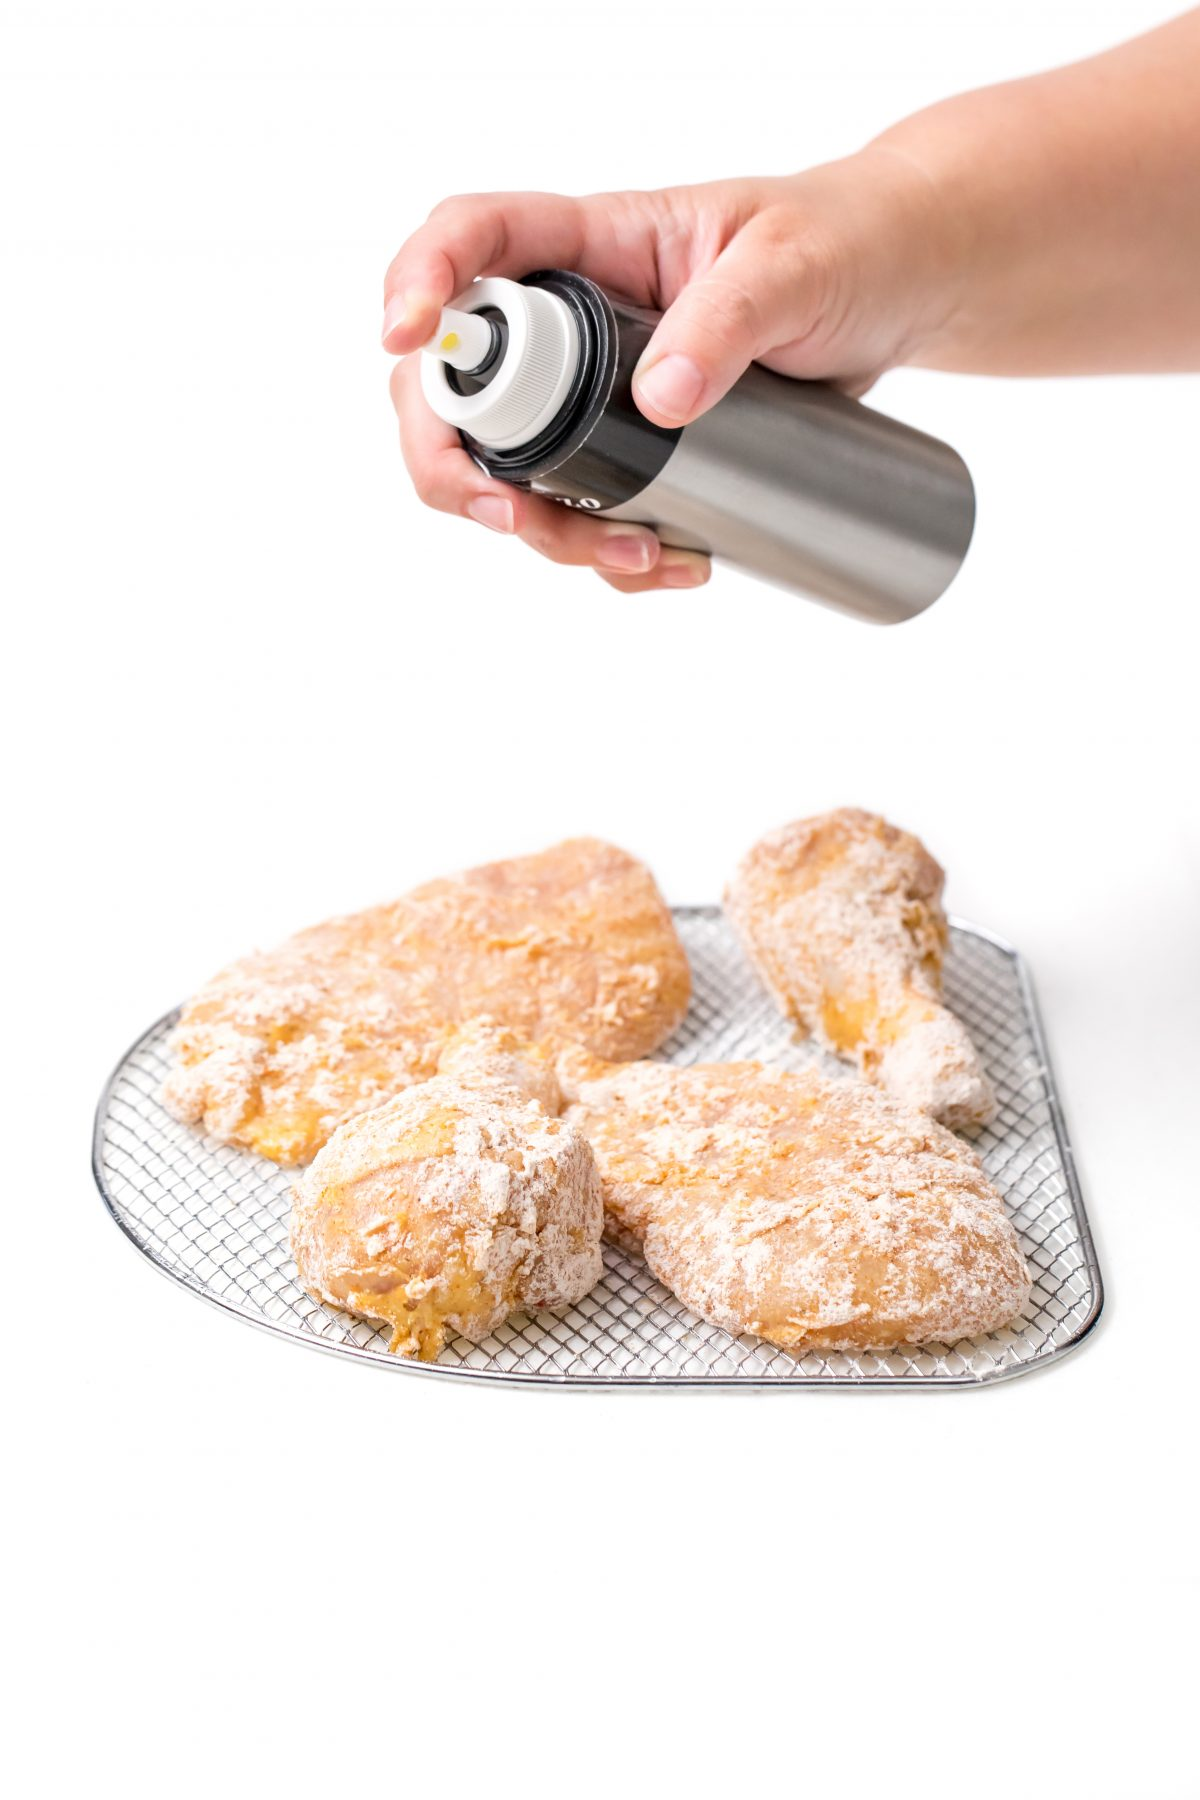 Spray Air Fryer fried chicken with oil